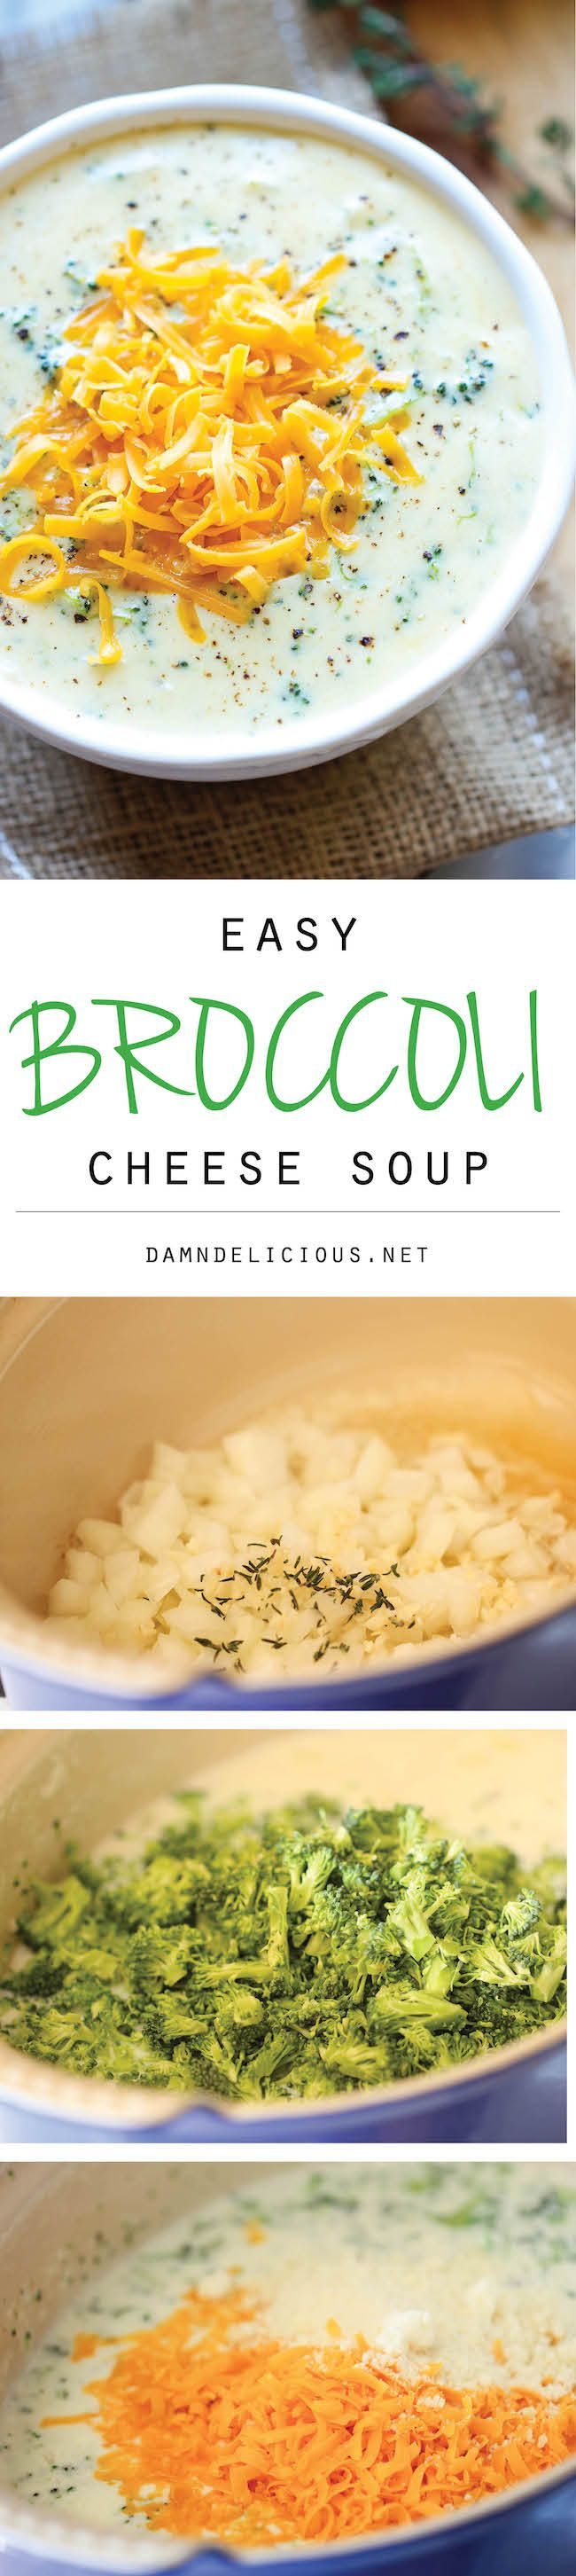 Broccoli Cheese Soup - So amazingly warm and cheesy, and you easily make this in less than 30 min. Perfect for those busy weeknights!